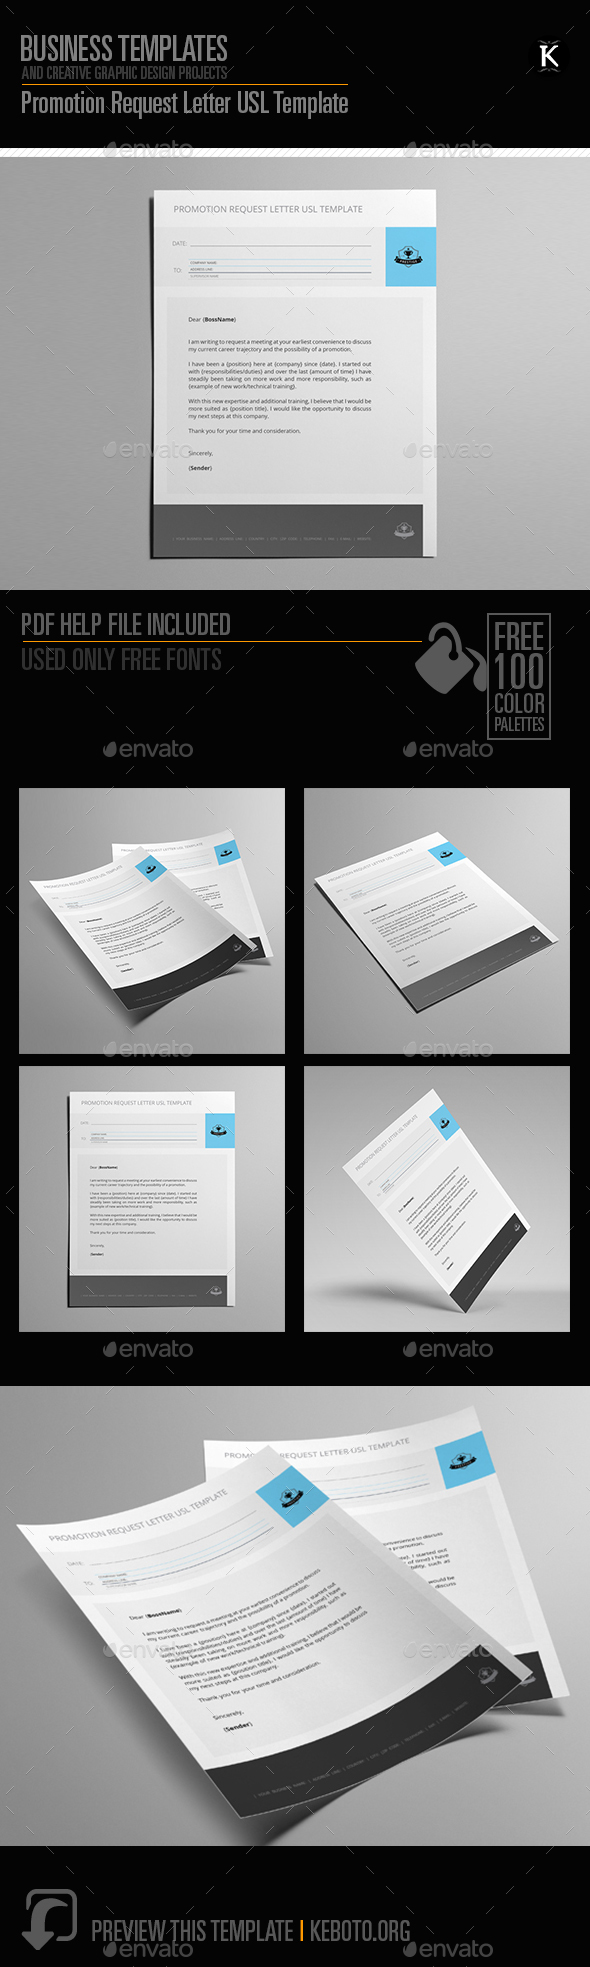 Promotion Request Letter USL Template - Miscellaneous Print Templates